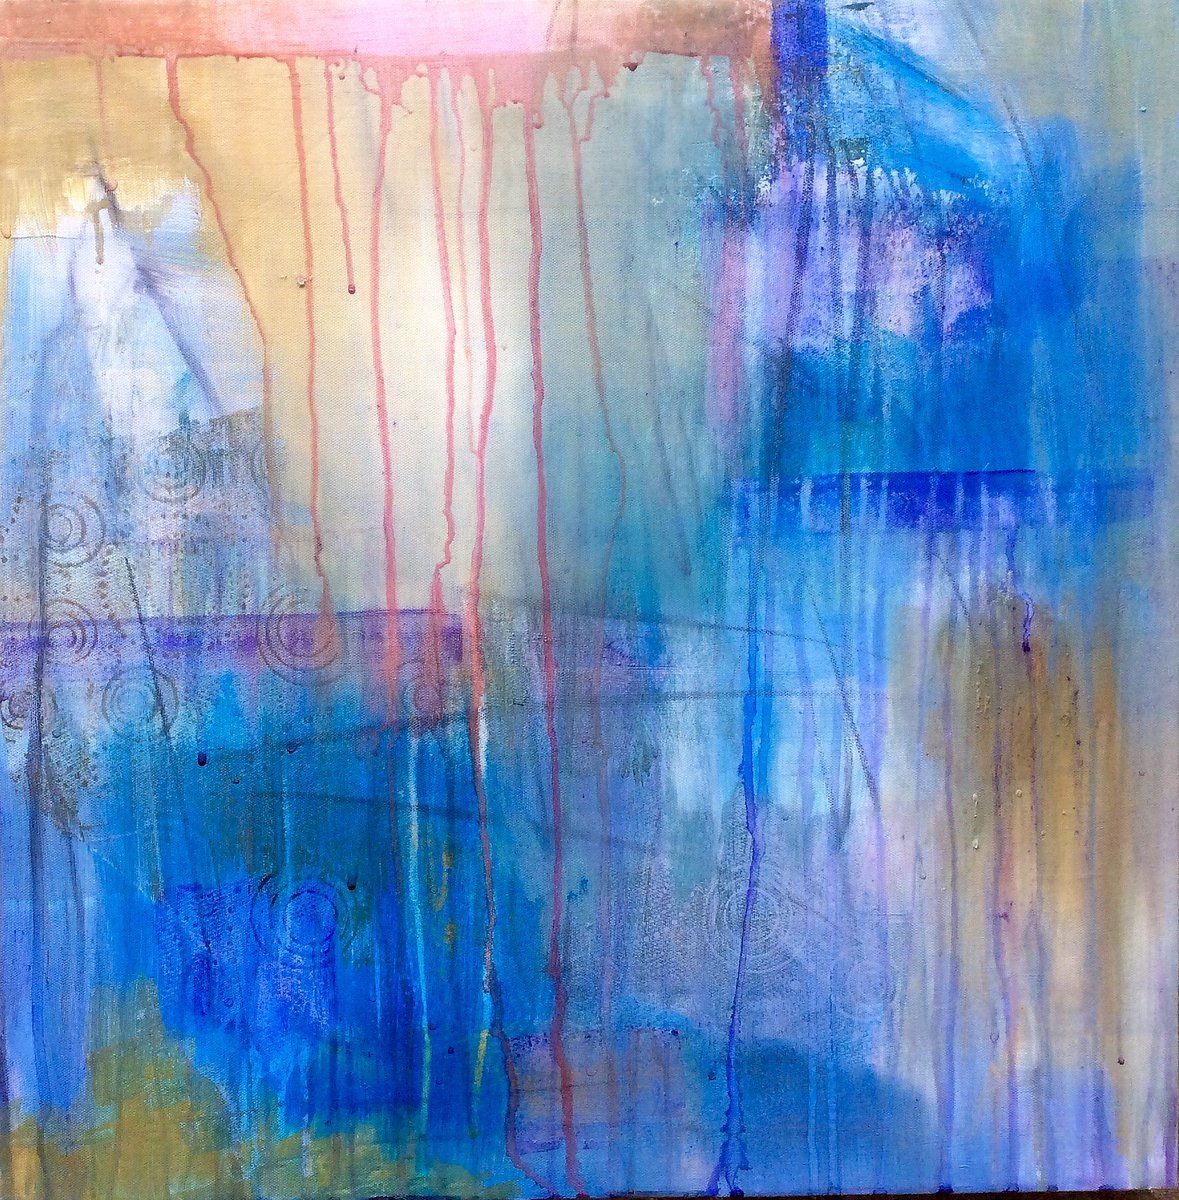 Andalucia - mixed media on canvas #art #painting #Abstract #artist #interiordesign #architects #décor #new #original #contemporary #ForSale <br>http://pic.twitter.com/PQXsFBYjui